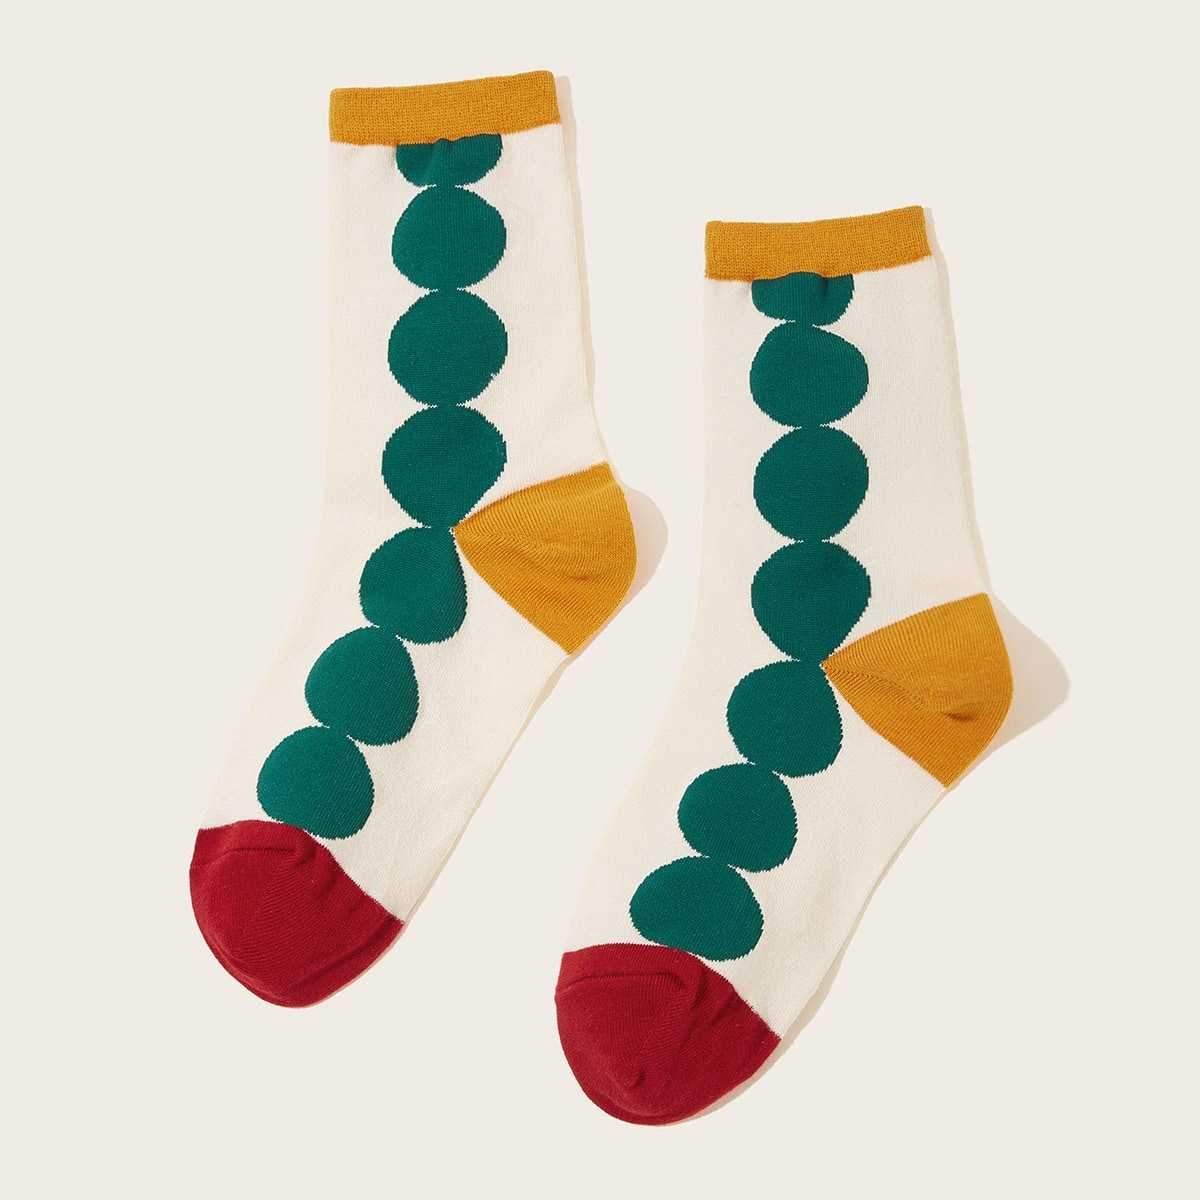 Round Pattern Ankle Socks 1pair in Multicolor by ROMWE on GOOFASH